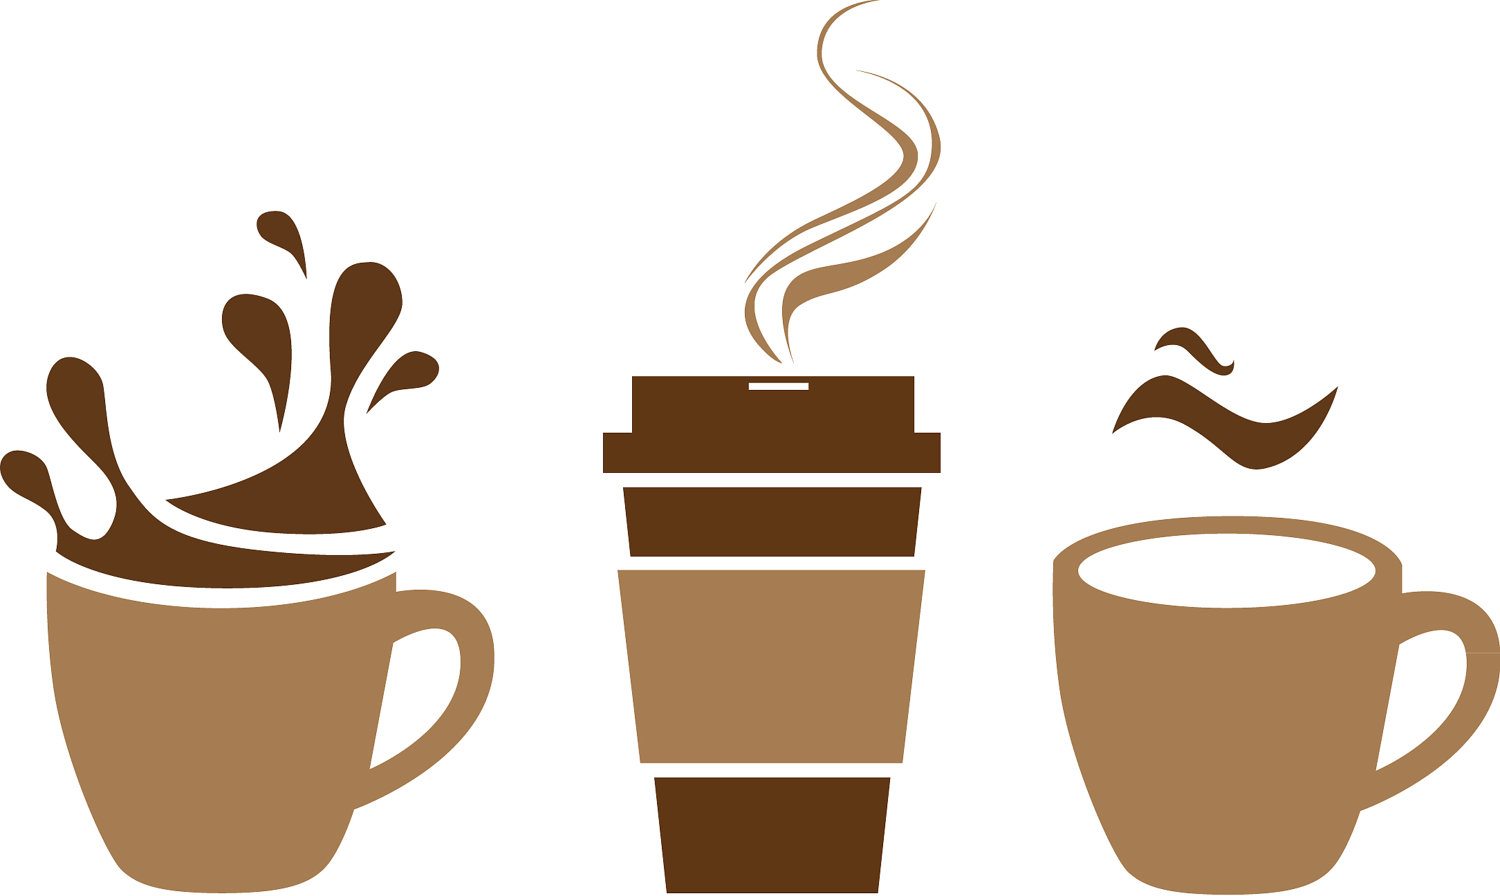 coffee cup clip art images - photo #38